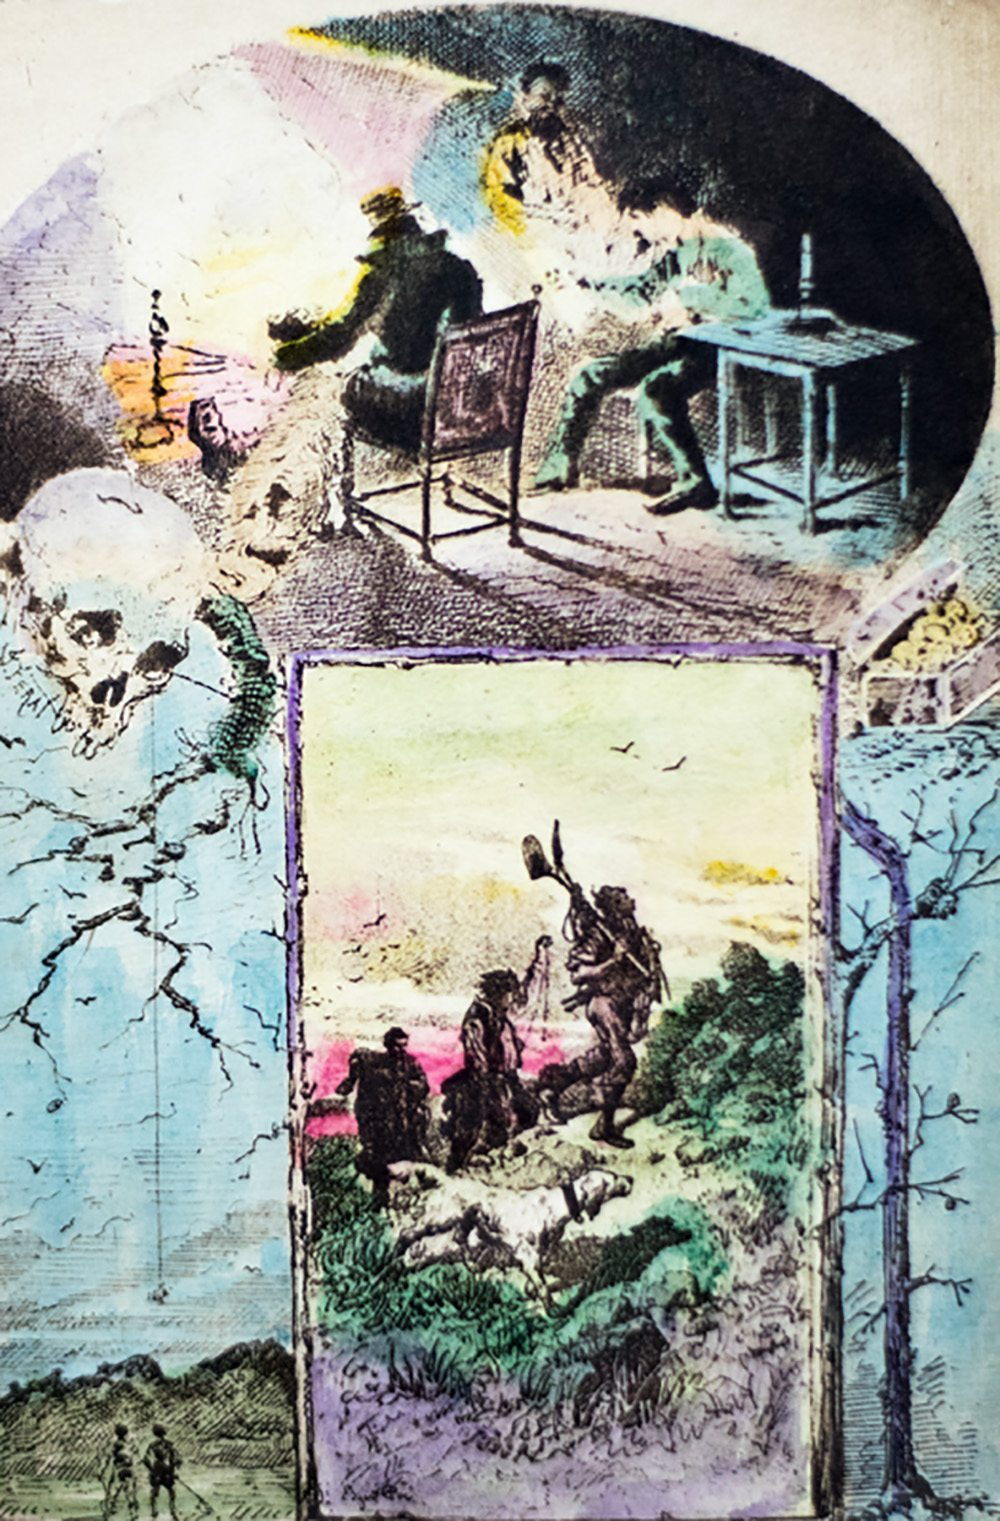 a history of edgar allan poes work By 1831, poe had published three collections of his poems, with little financial  and only minor critical success  source: edgar allan poe society of baltimore.